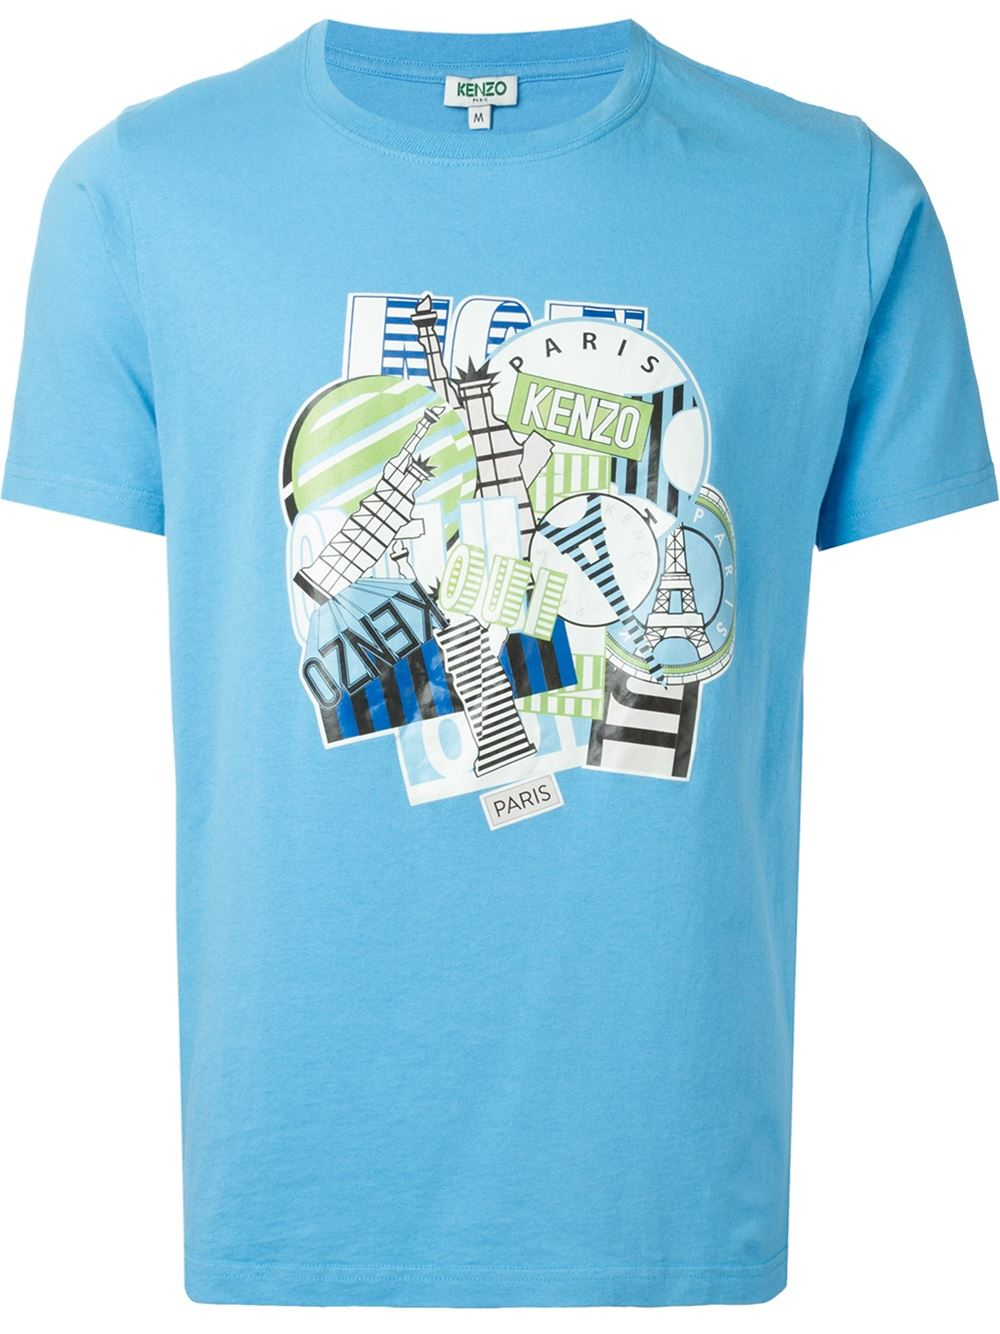 kenzo multi logo print t shirt in blue for men lyst. Black Bedroom Furniture Sets. Home Design Ideas